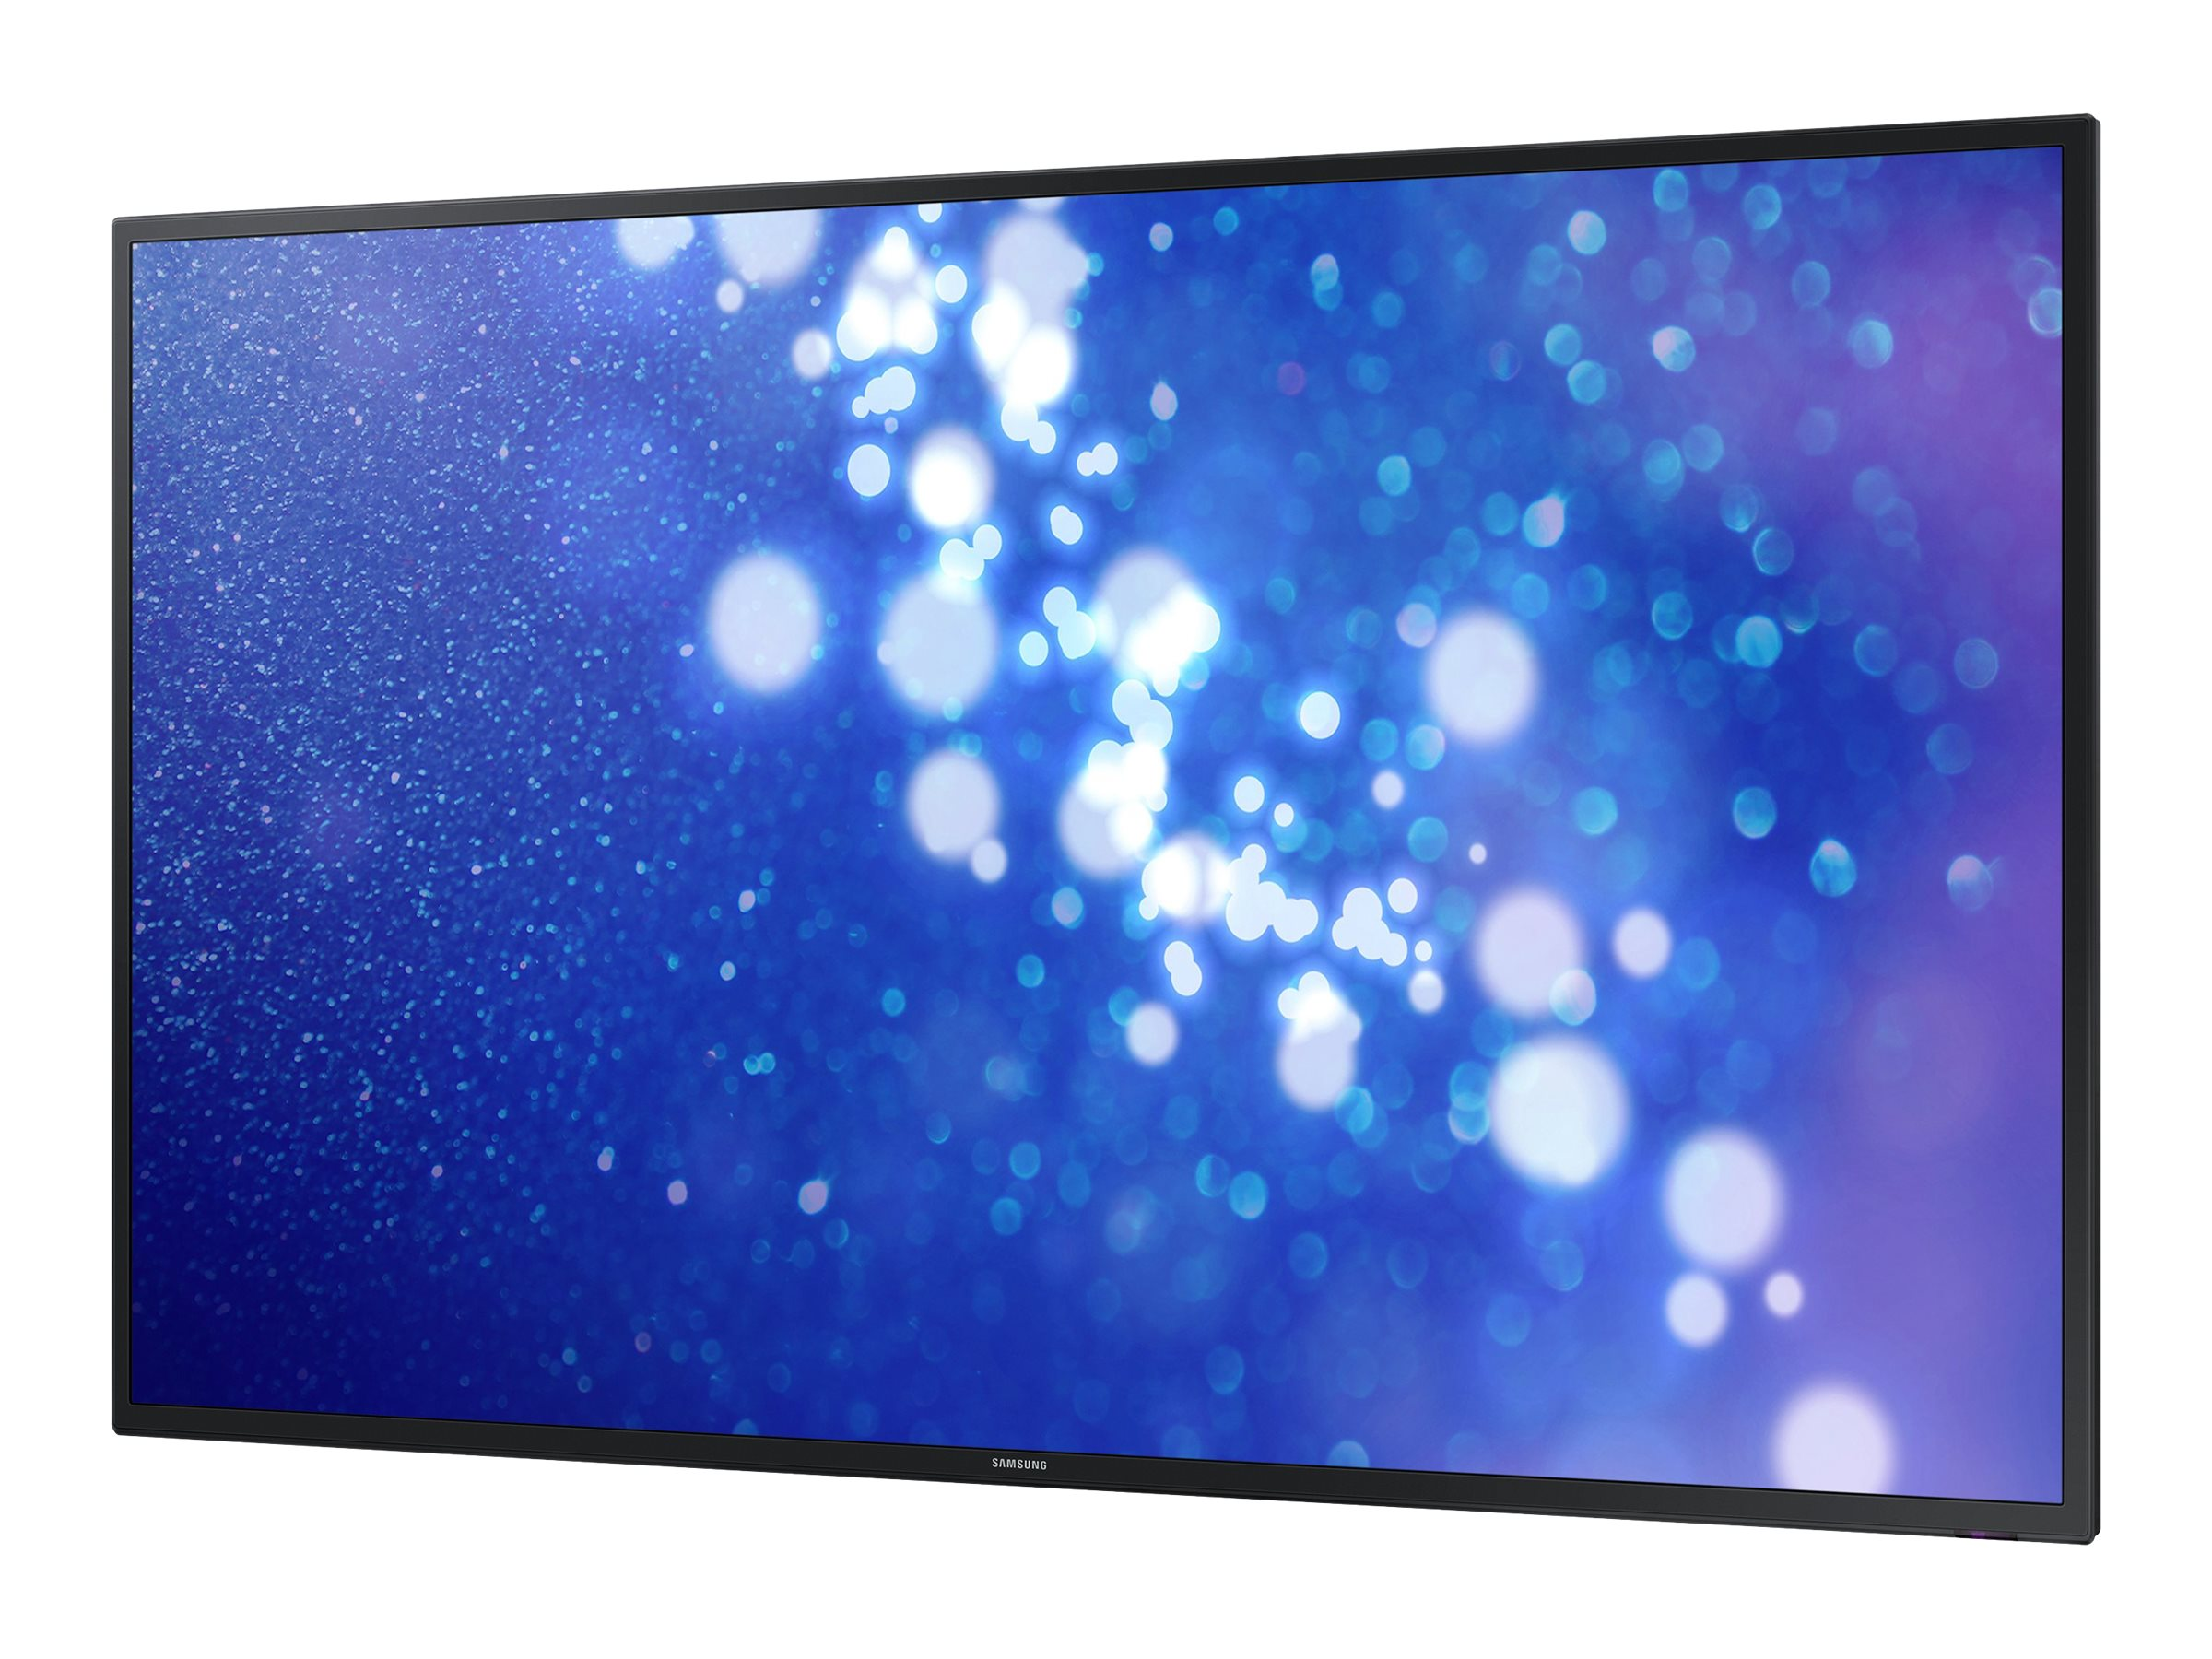 Samsung 75 DM-E Full HD LED-LCD Display, Black, DM75E